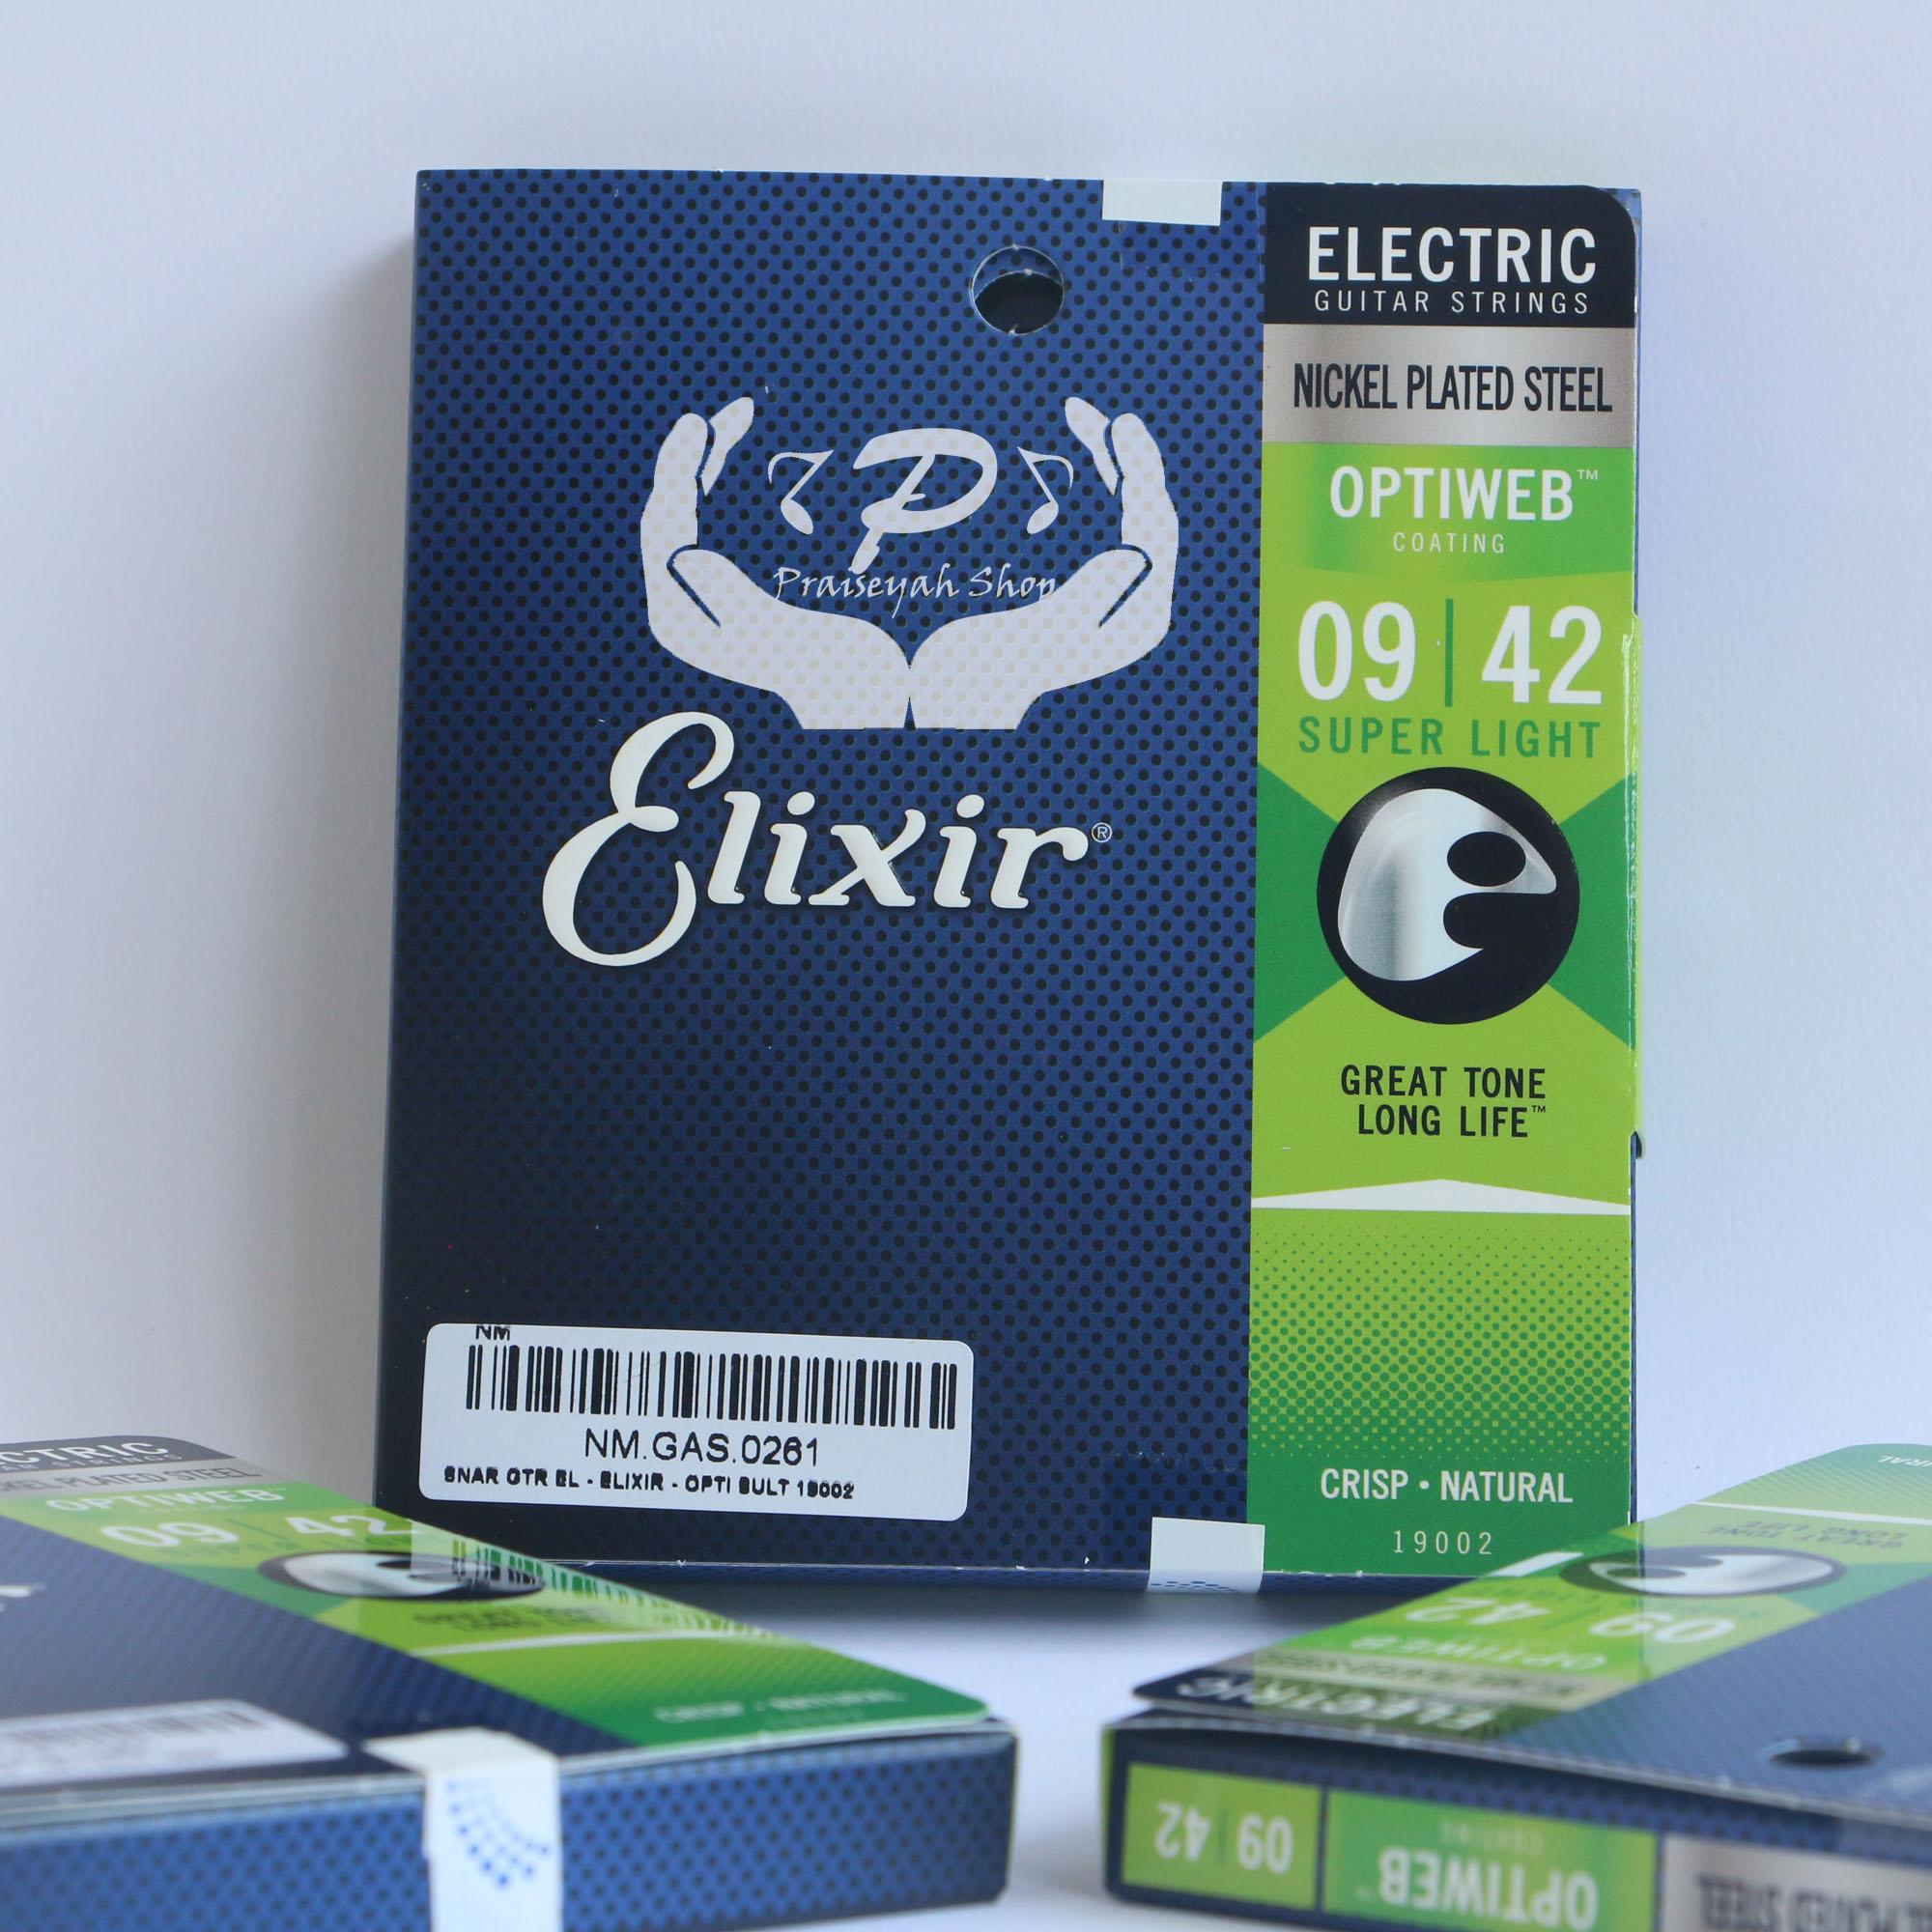 Senar Gitar Elixir Elektrik / Listrik Anti Karat Optiweb ukuran 0.009 - 0.042 (Super Light) Original